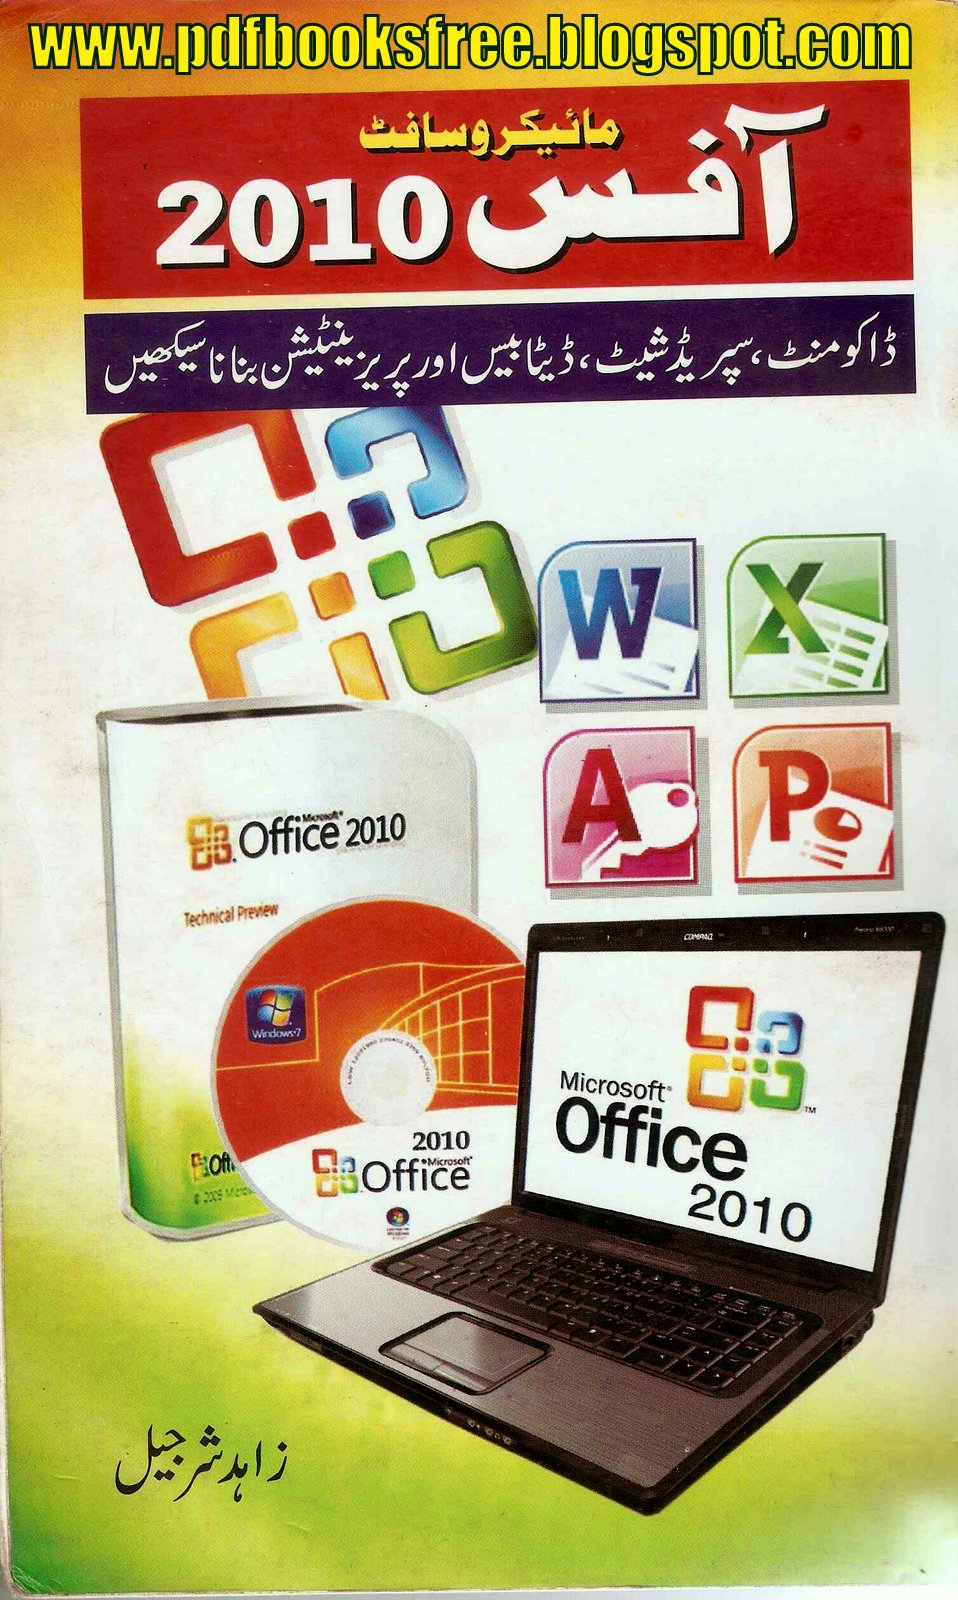 microsoft office 2010 book free download